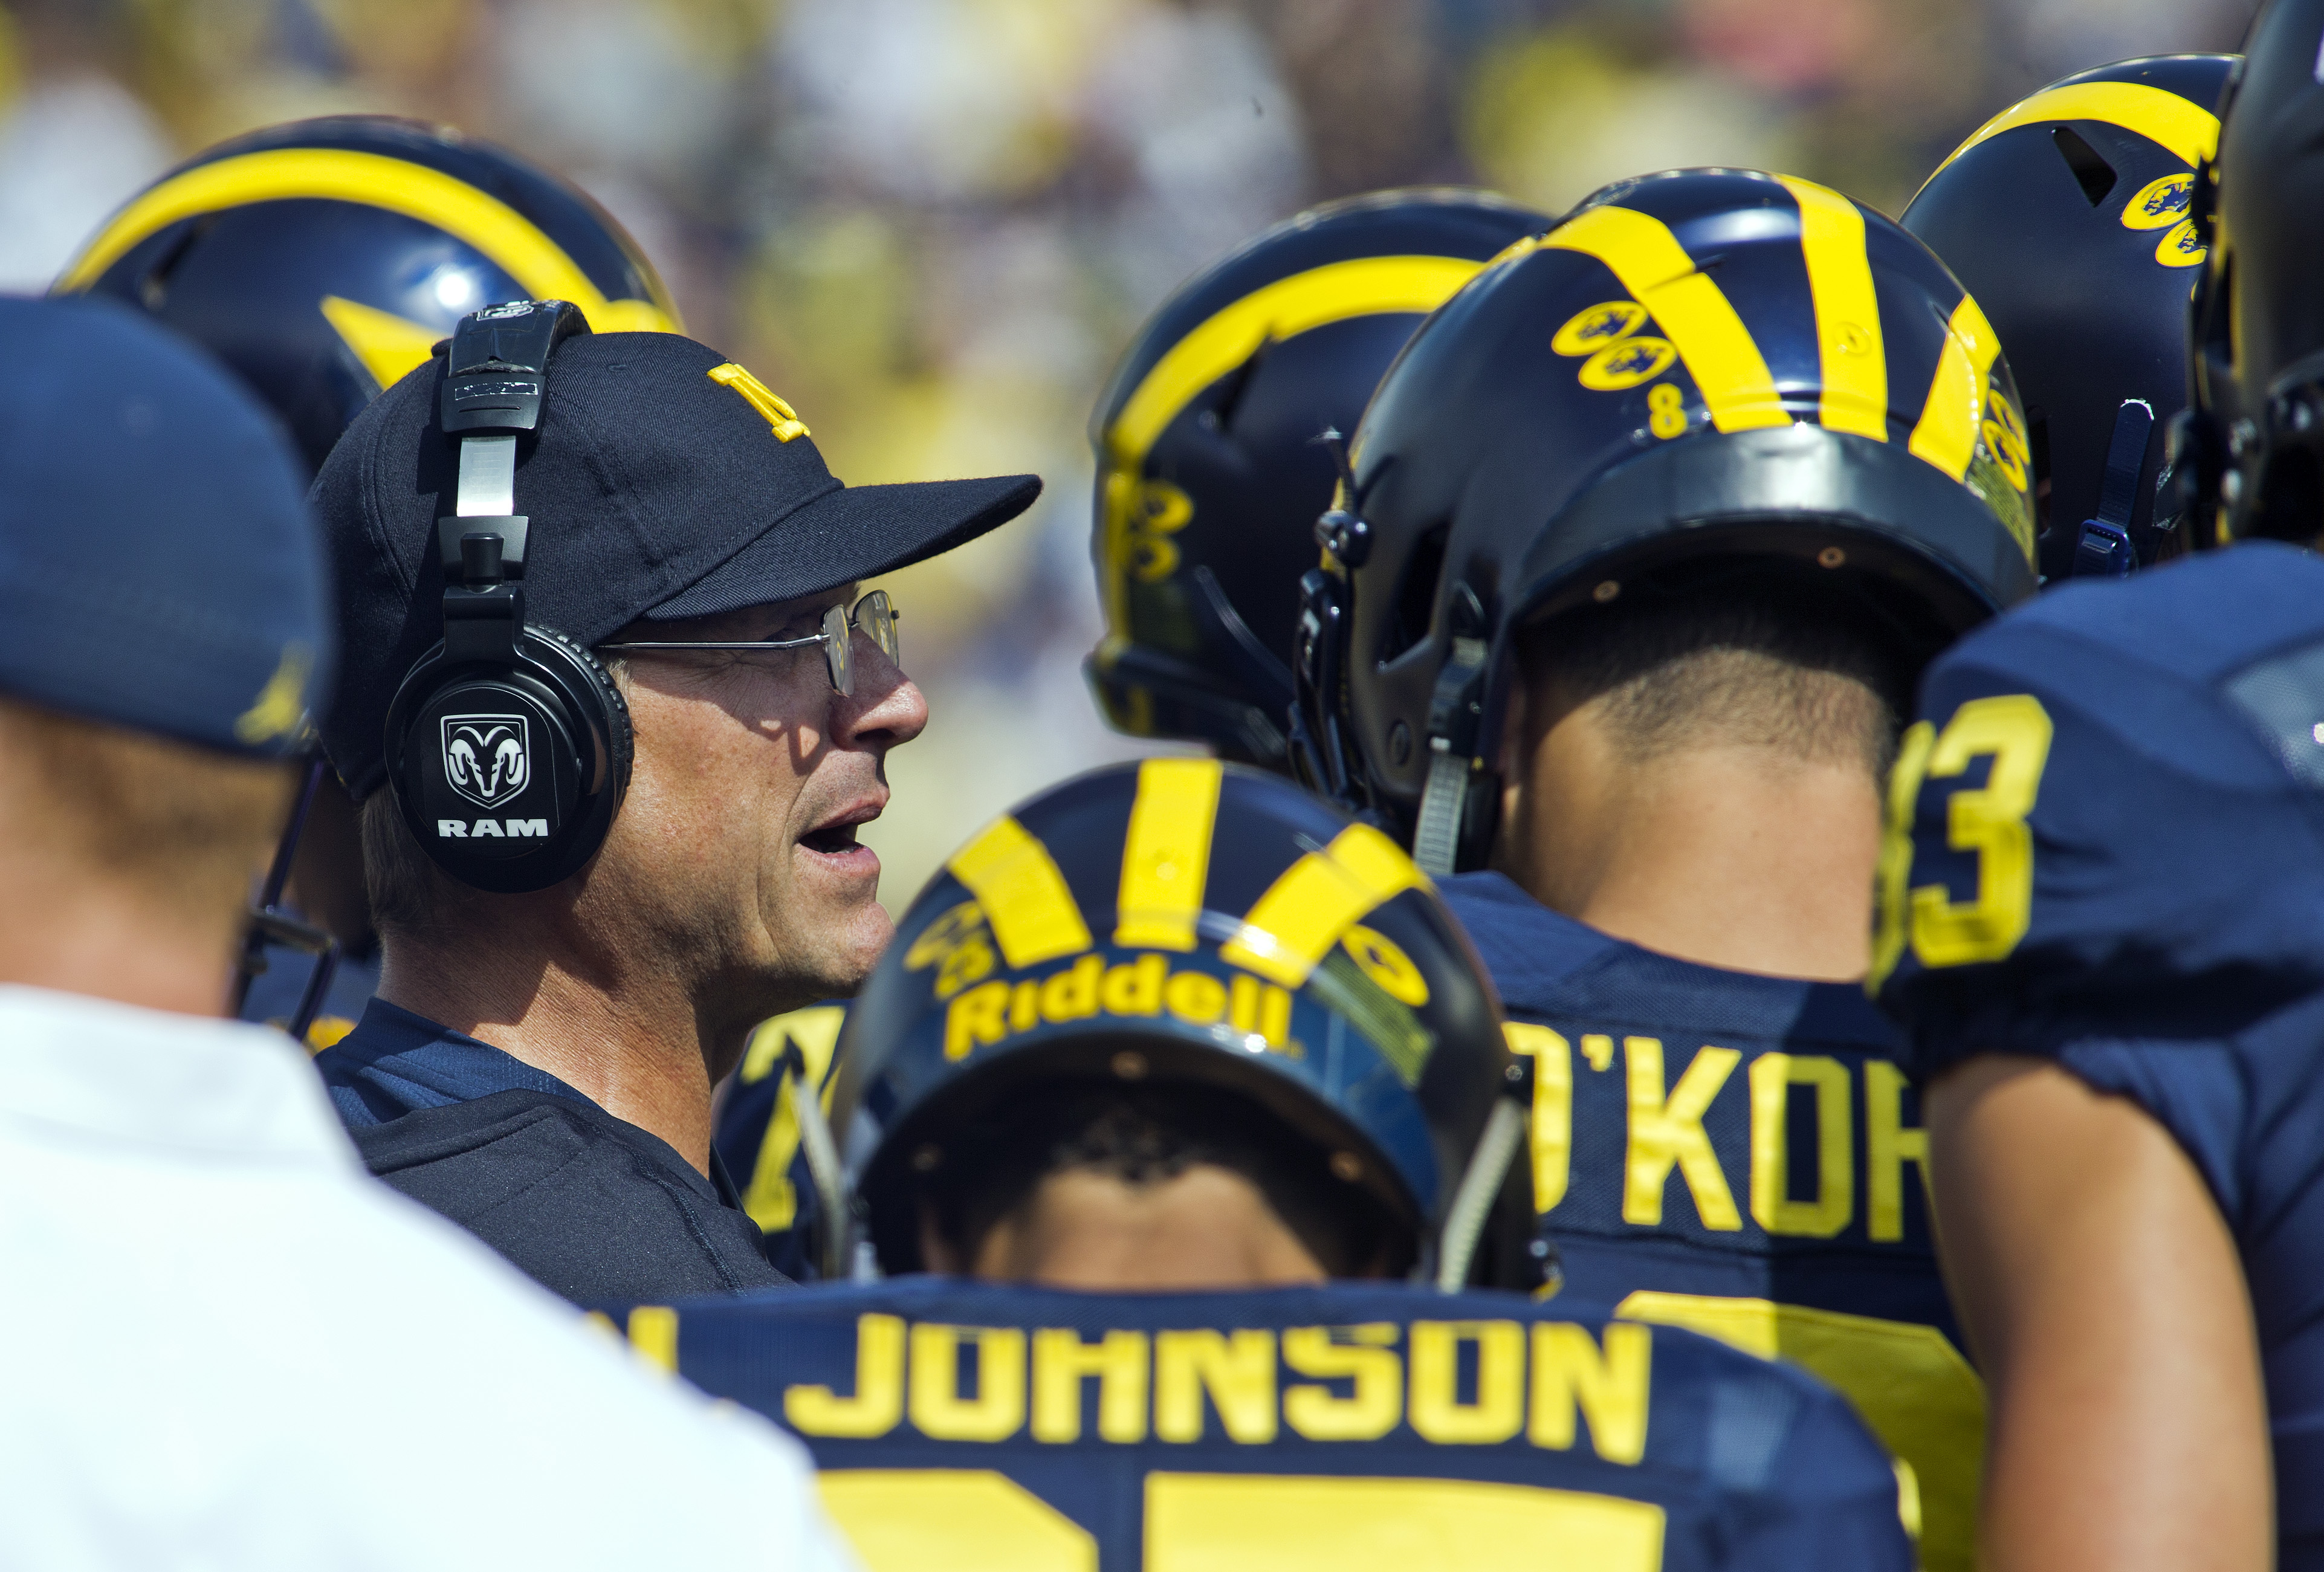 Michigan head coach Jim Harbaugh, left, huddles with his offense in the fourth quarter of an NCAA college football game against Central Florida at Michigan Stadium in Ann Arbor, Mich., Saturday, Sept. 10, 2016. Michigan won 51-14. (AP Photo/Tony Ding)